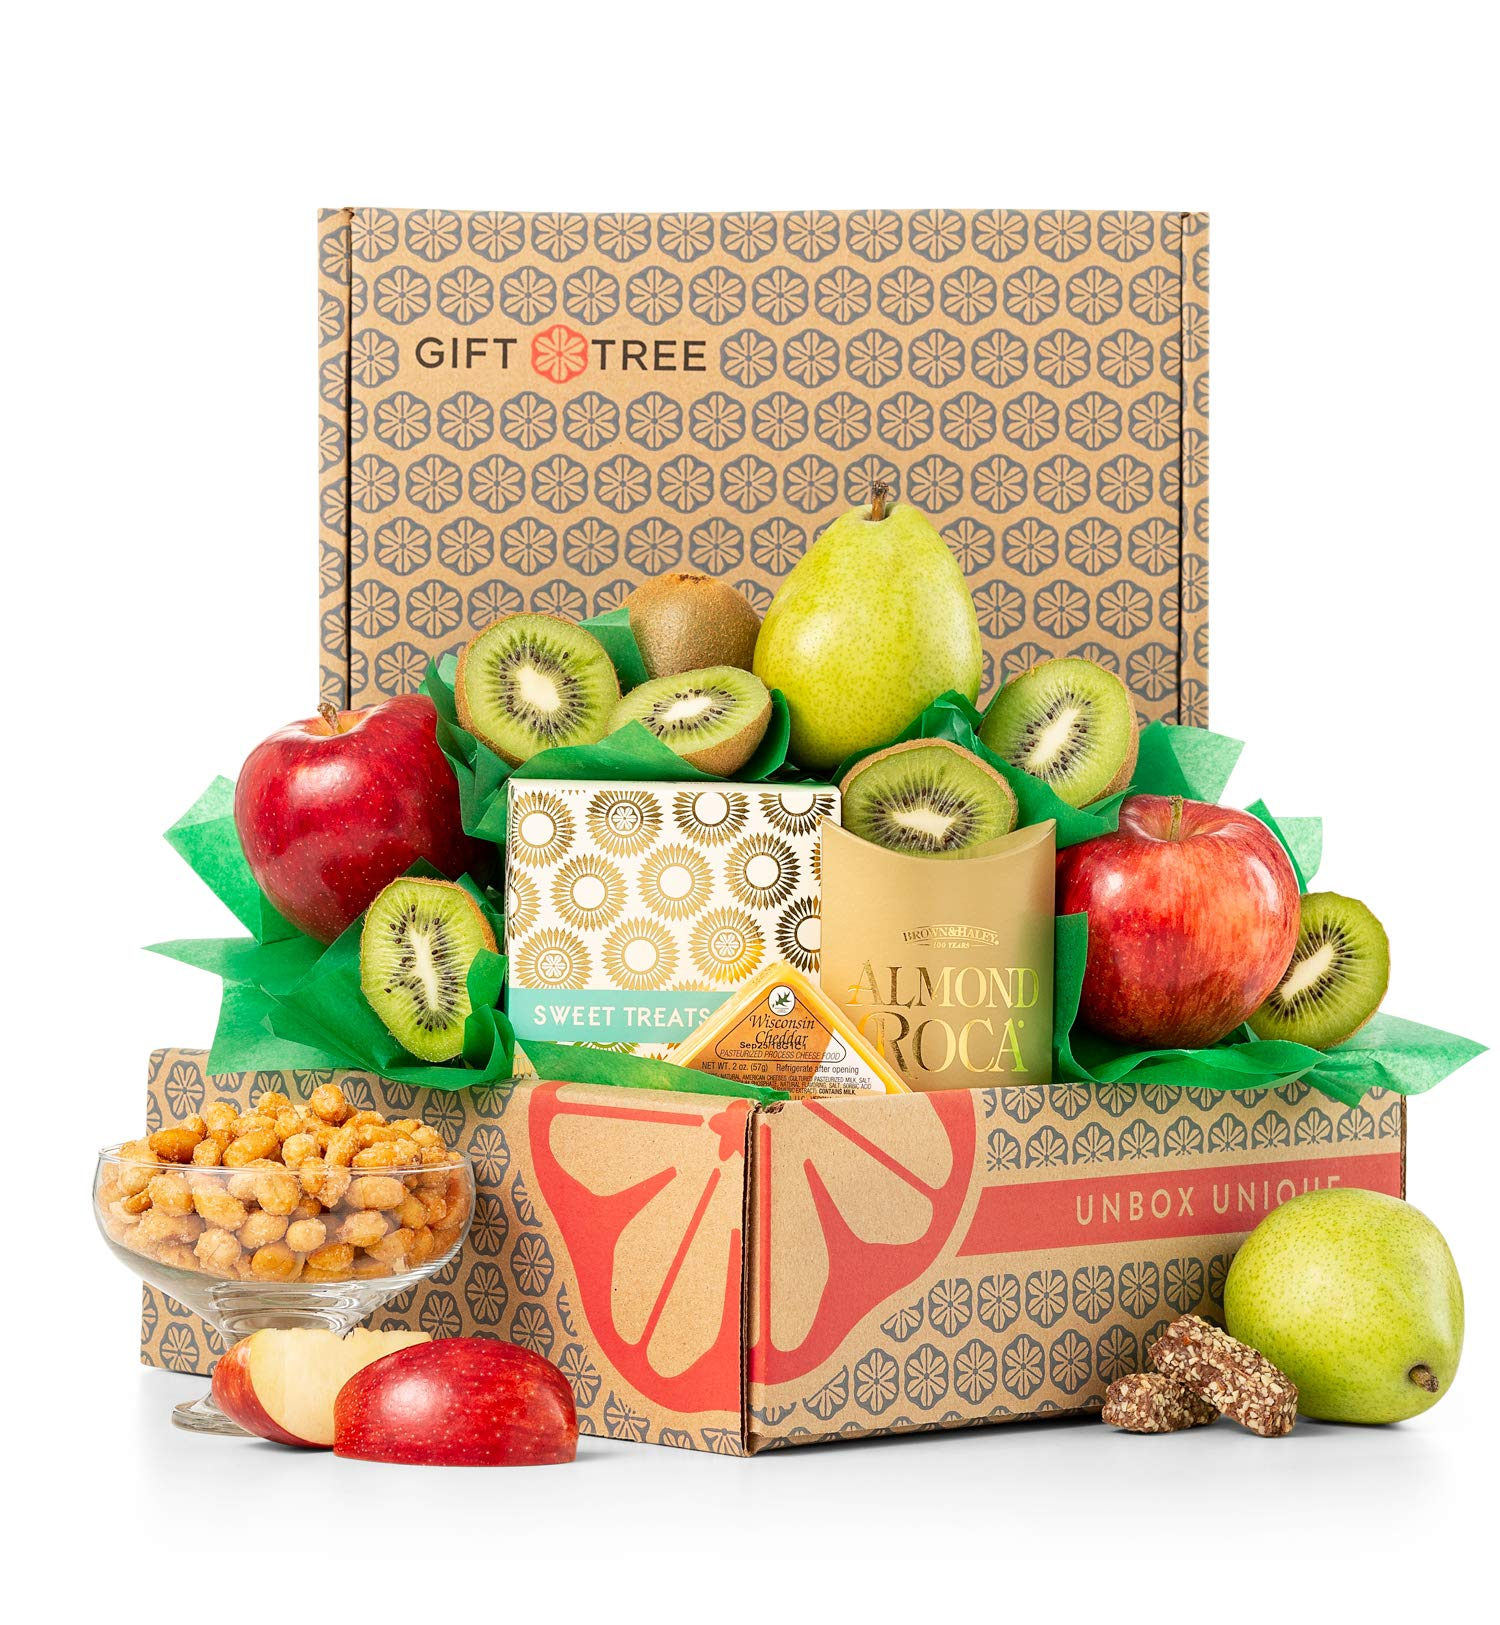 GiftTree Harvest Fruit and Snack Gift Box   Includes Delicious Apples, Kiwis, Pears and Almond Roca   Great Gift for Holidays, Christmas, Birthday, Thank You